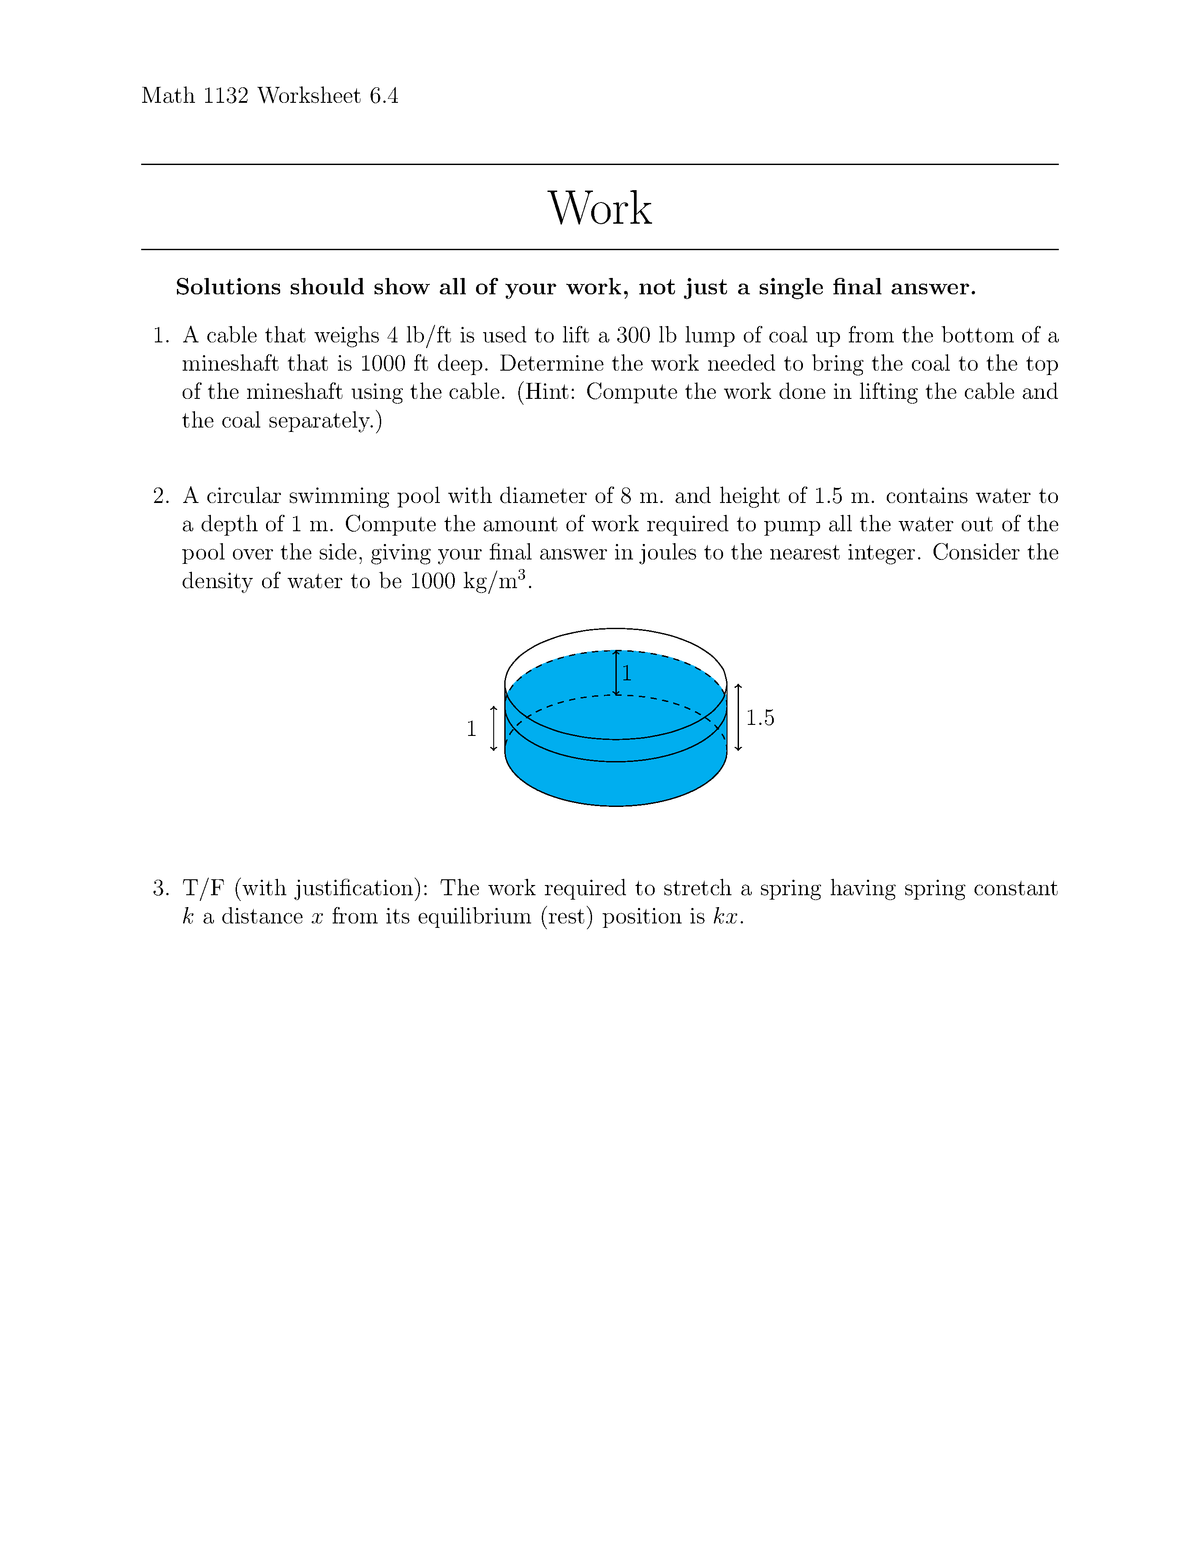 Seminar assignments - Worksheet 6 4 and 7 - 11 11 - UConn